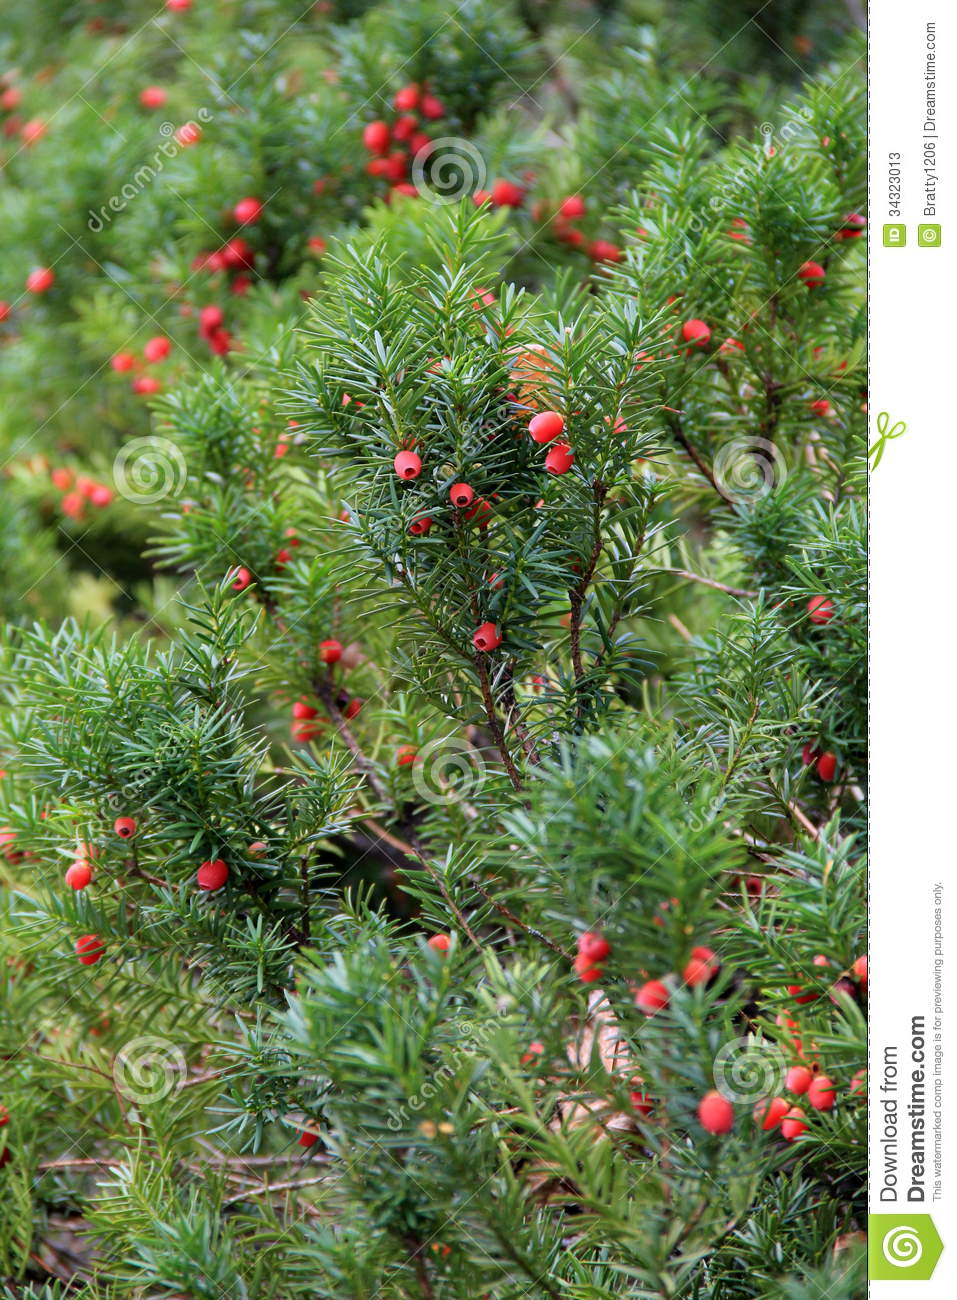 Landscaping Shrubs With Red Berries : Bright red berries on green shrub stock photos image